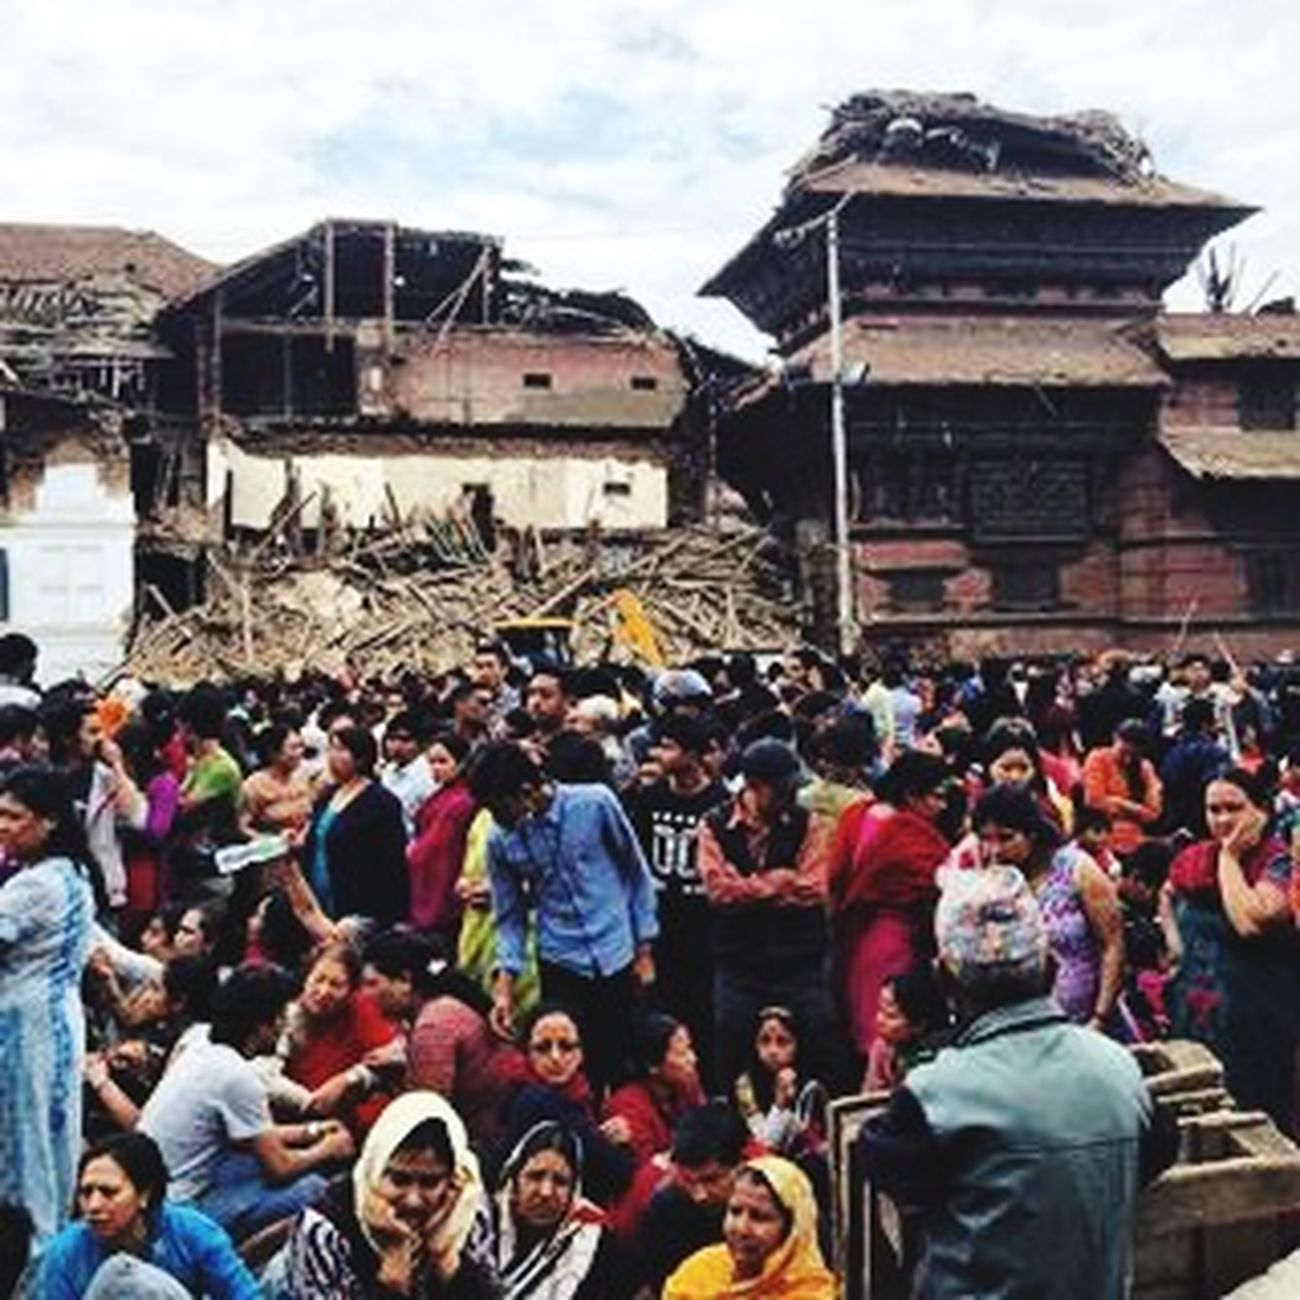 Earthquake in Nepal. Completely heartbroken. I pray for my country and people. Hope we could help PrayforNepal